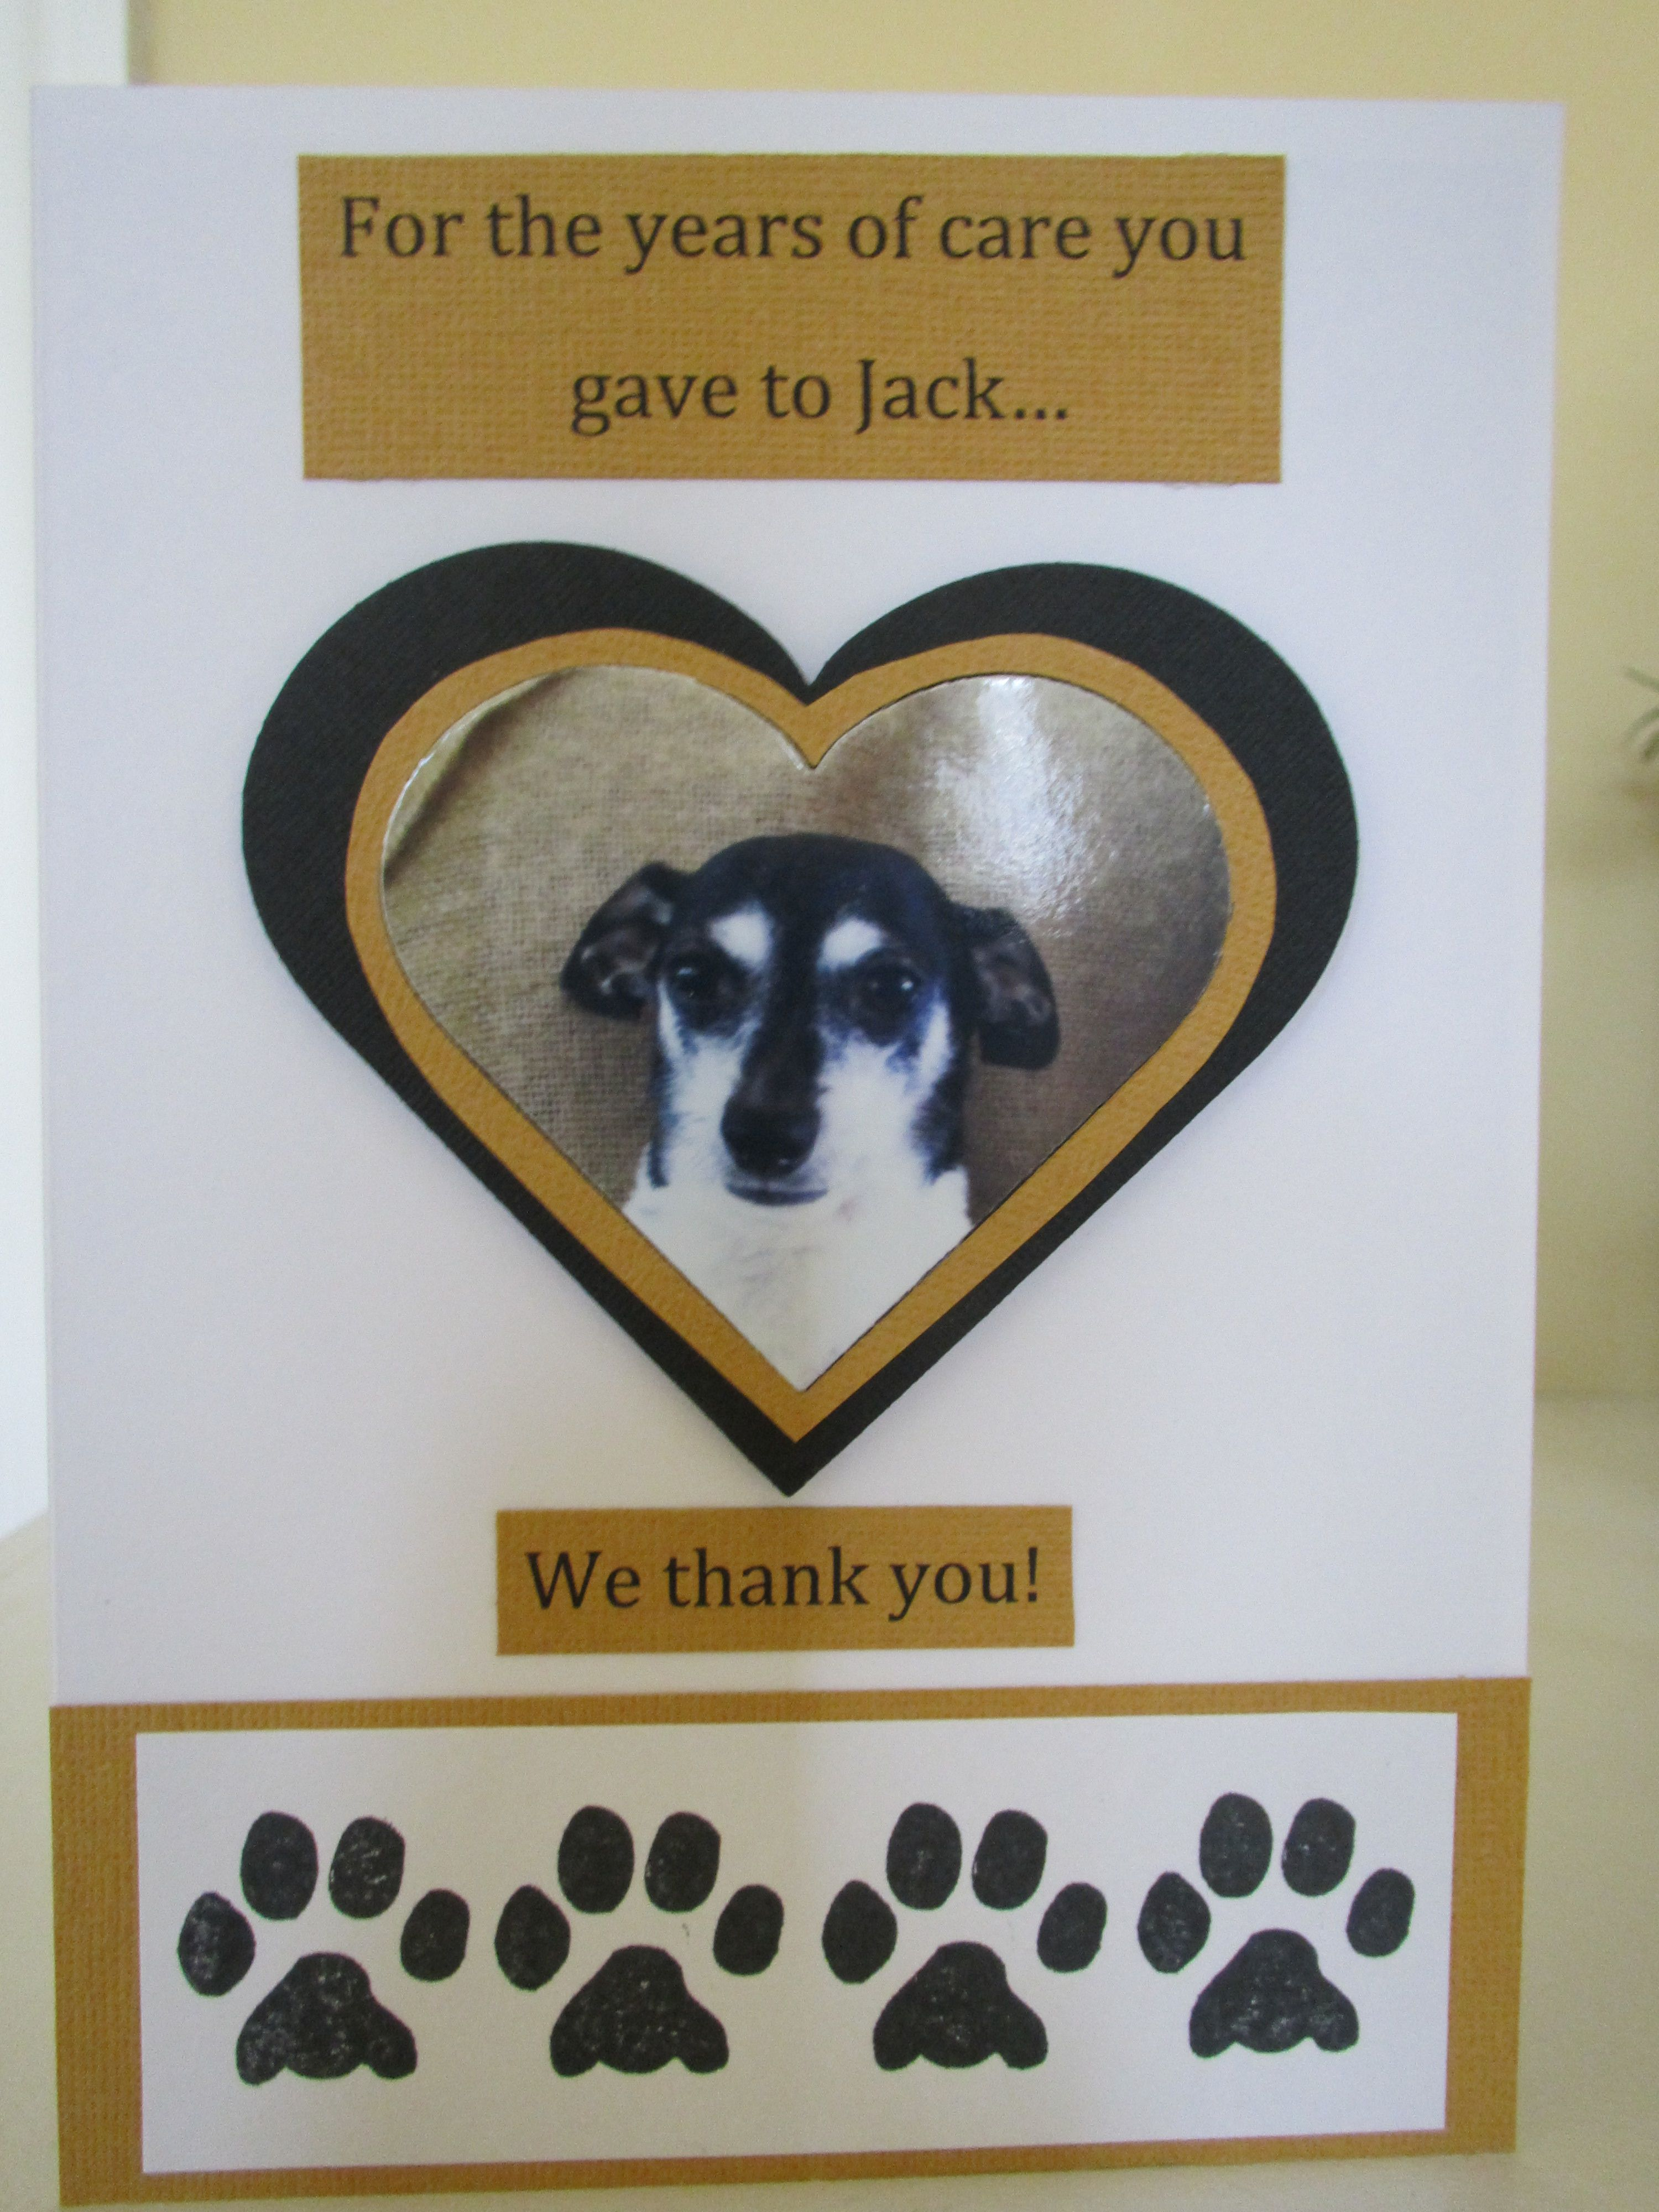 Thank You Card To Our Veterinarians Themed Cards Thank You Cards Gifts For Veterinarians